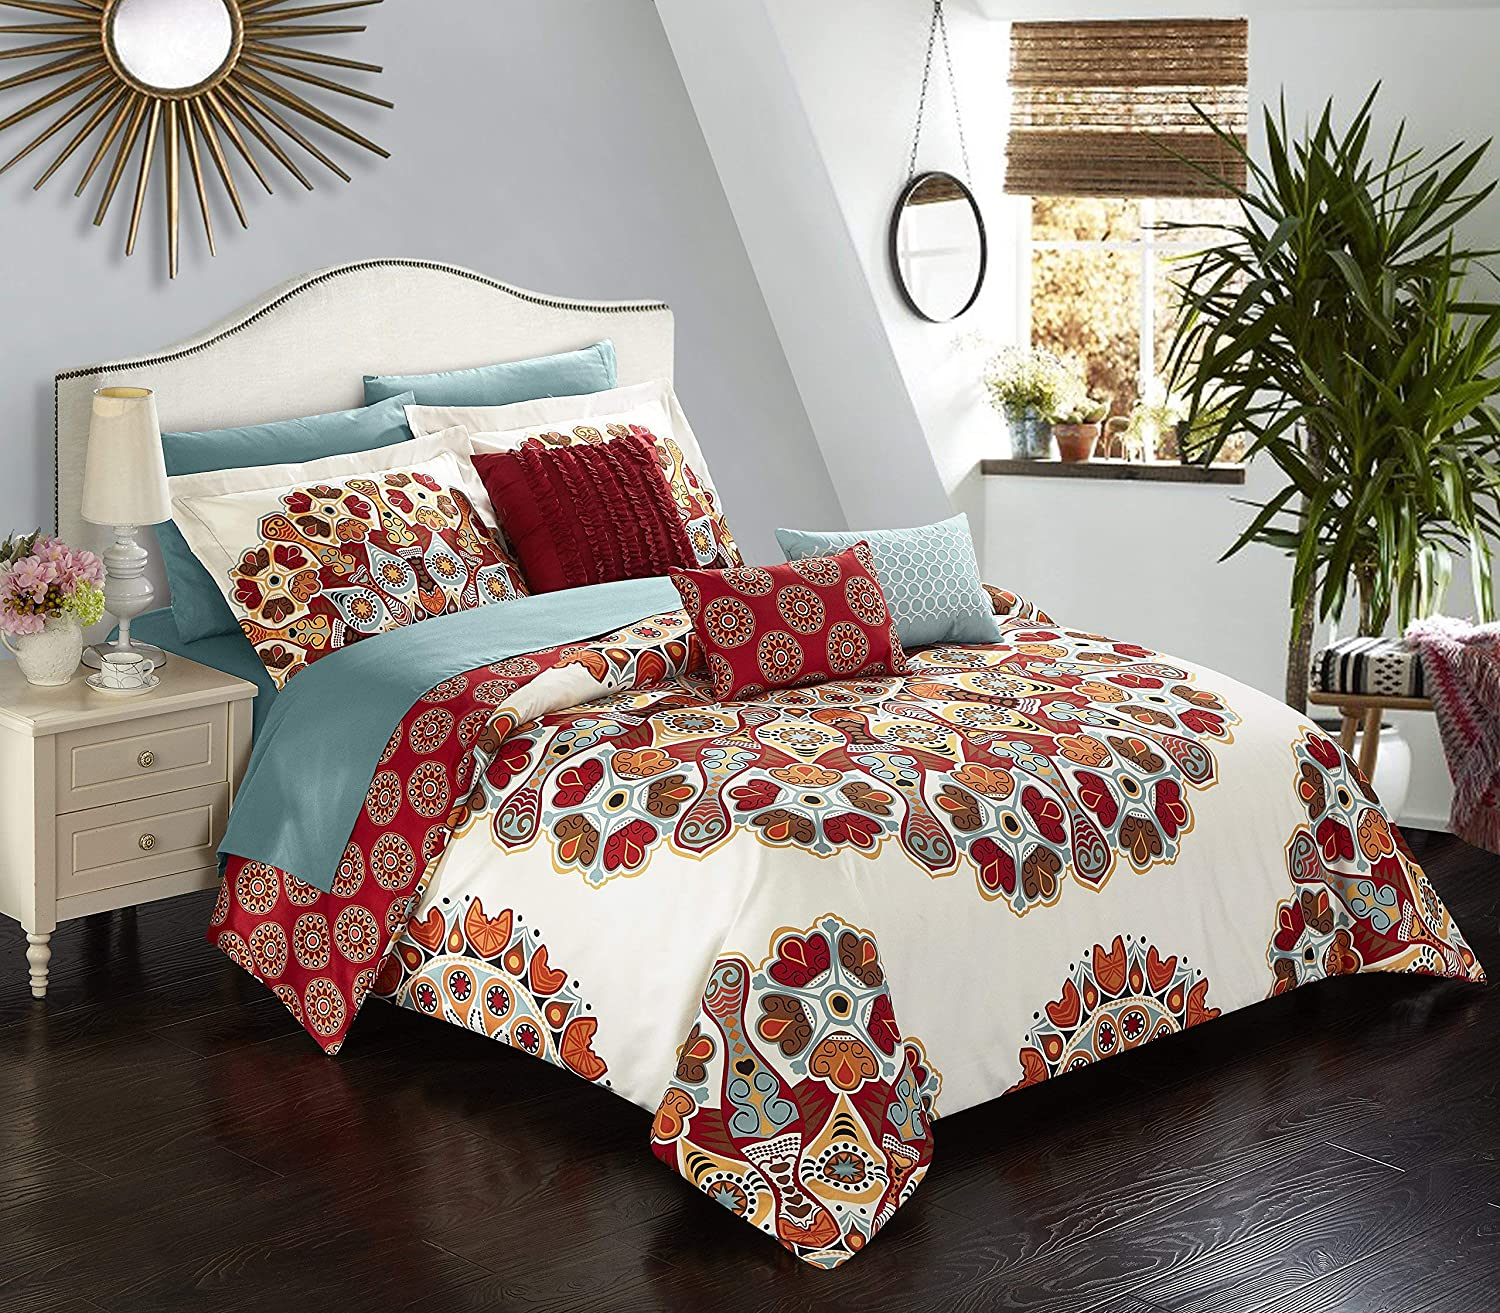 Chic Home CS5045-AN 10 Piece Aberdeen Large Scale Paisley Bohemian Reversible Printed with Embroidered Details. Queen Bed in a Bag Comforter Set Red